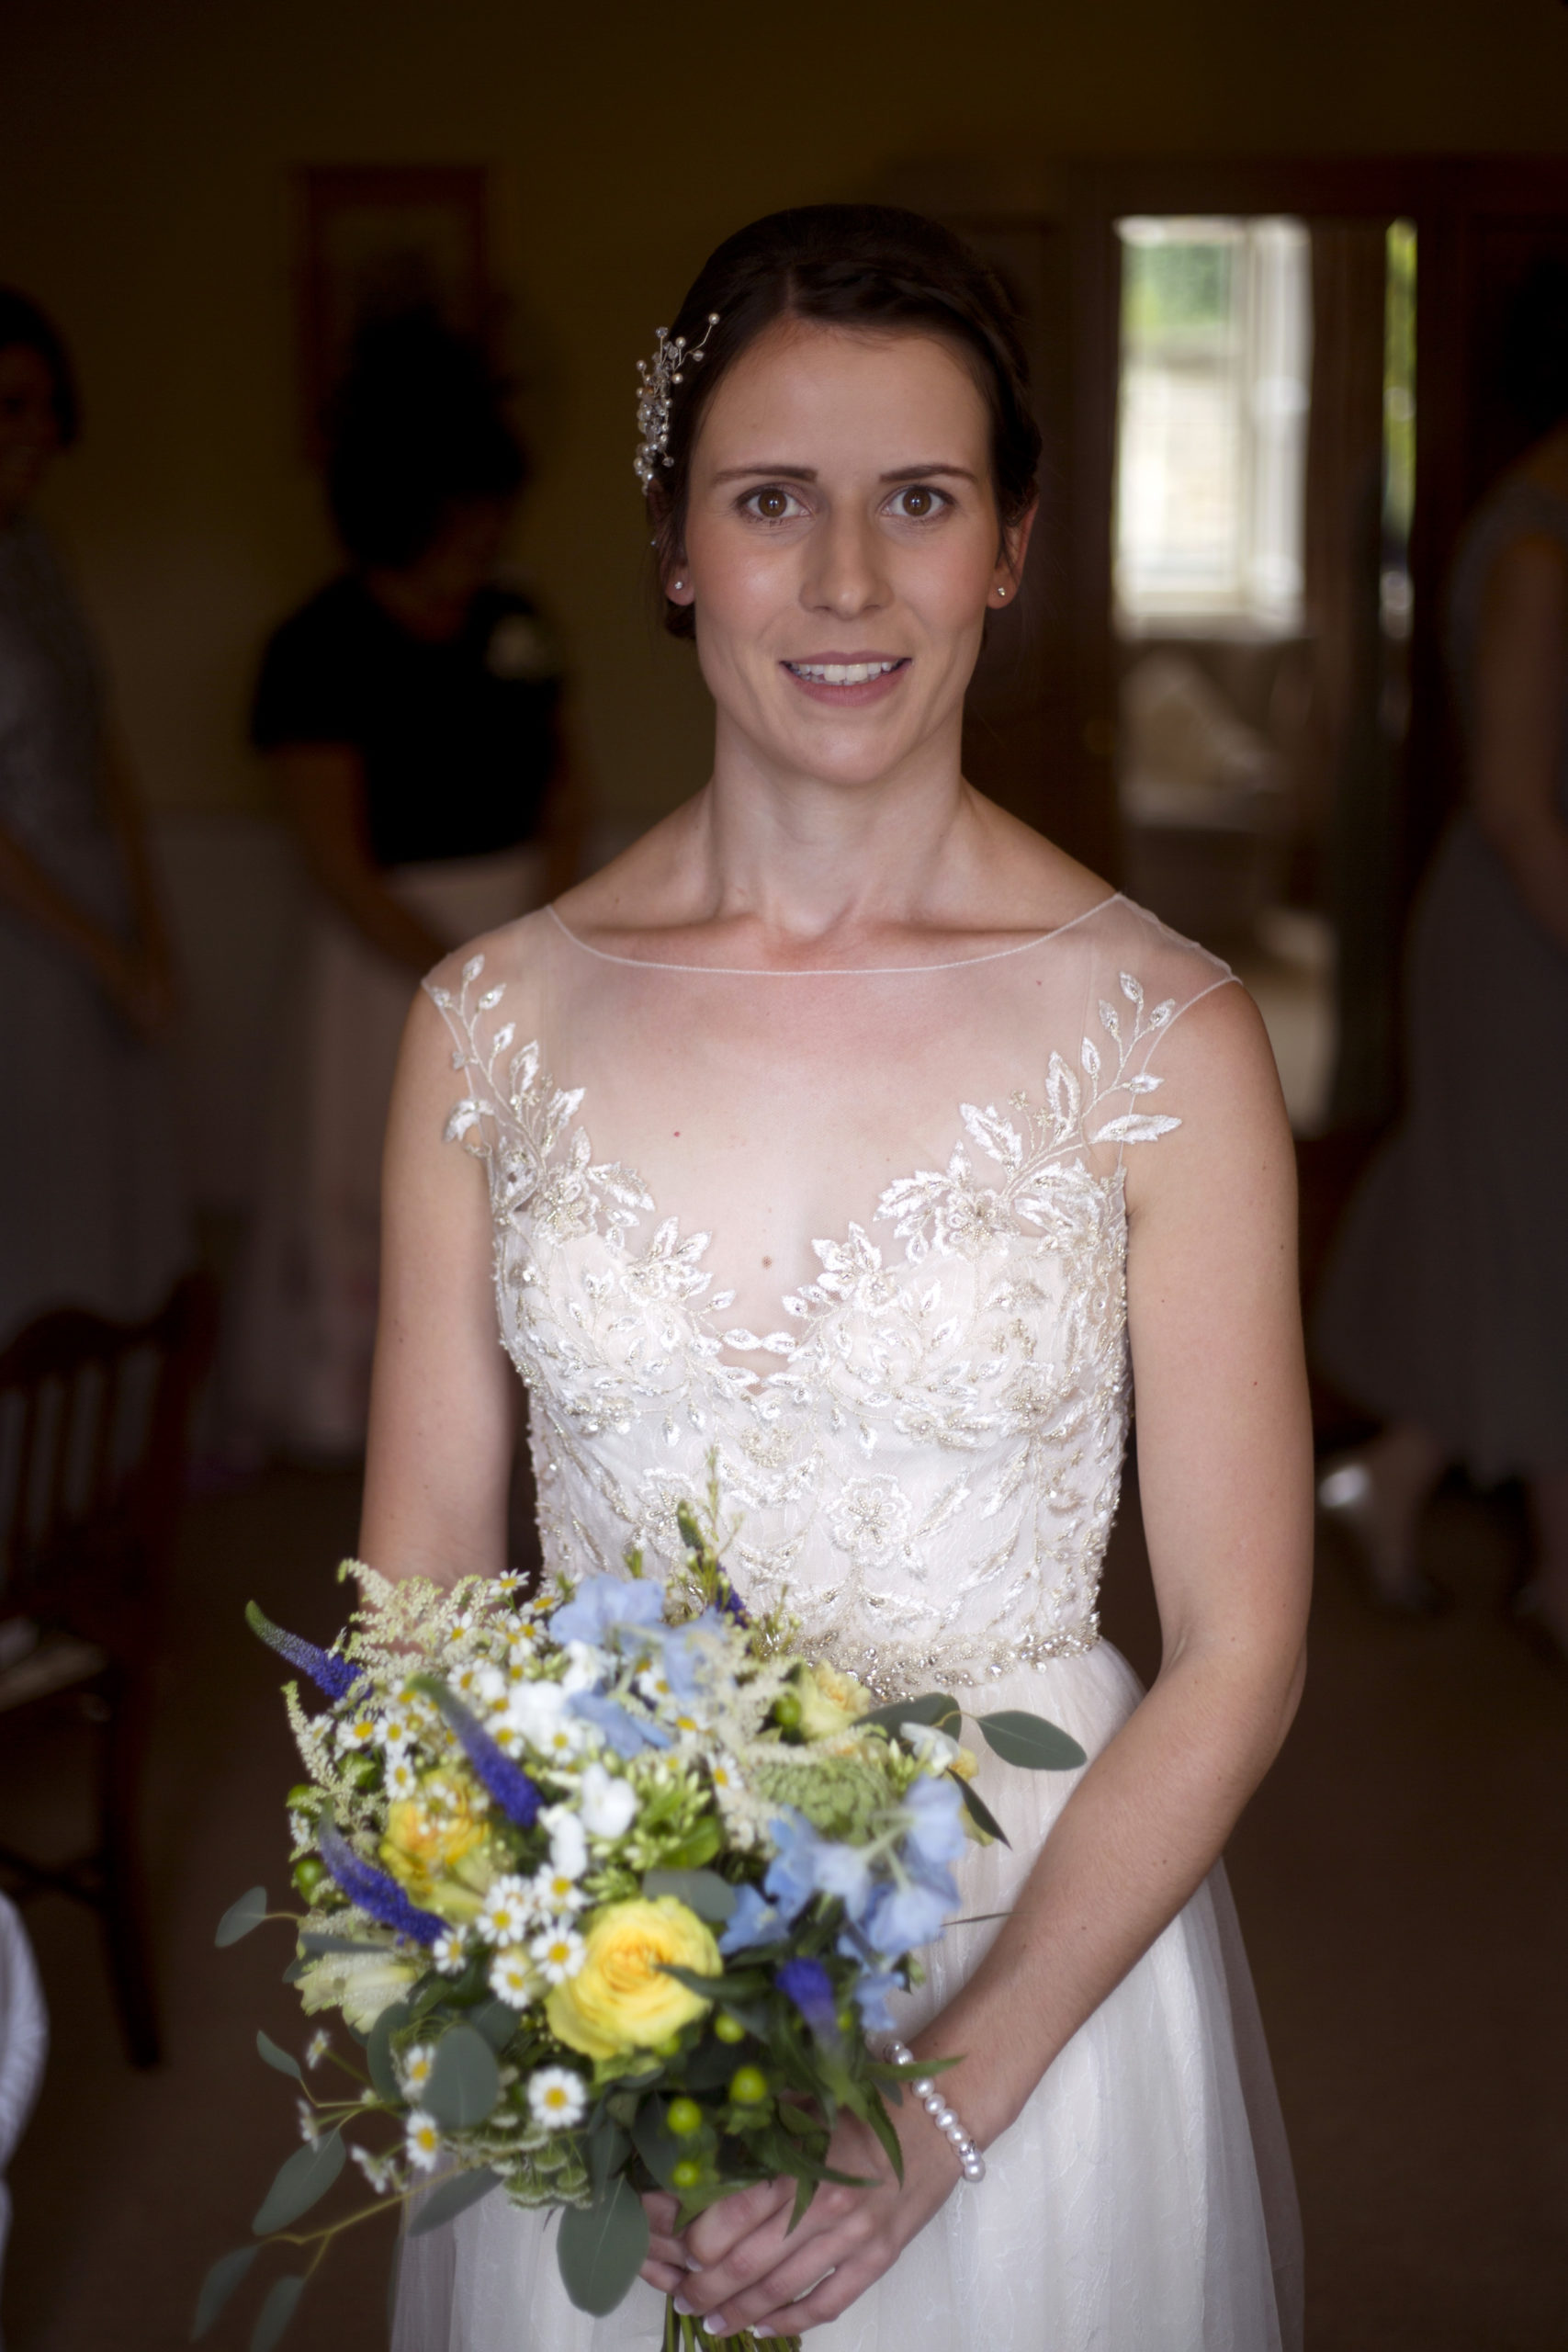 Bride with yellow and blue bouquet portrait Cripps barn outdoor wedding photographer